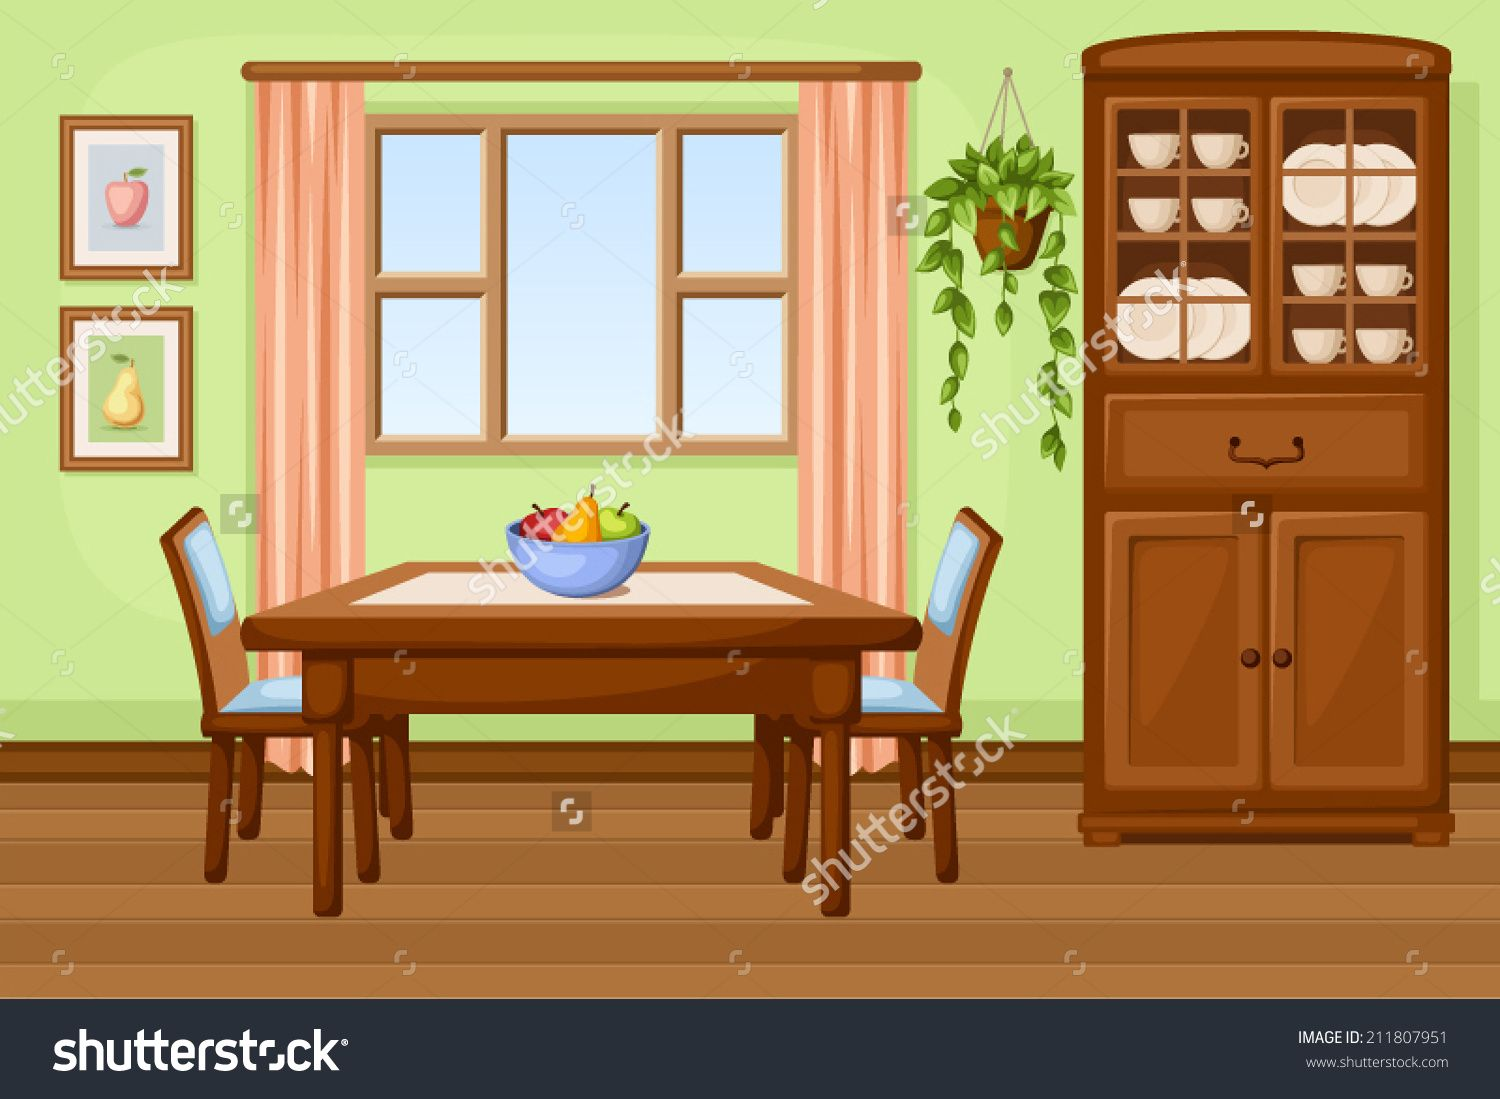 Image Result For Cartoon Dining Room Dining Room Images Dining